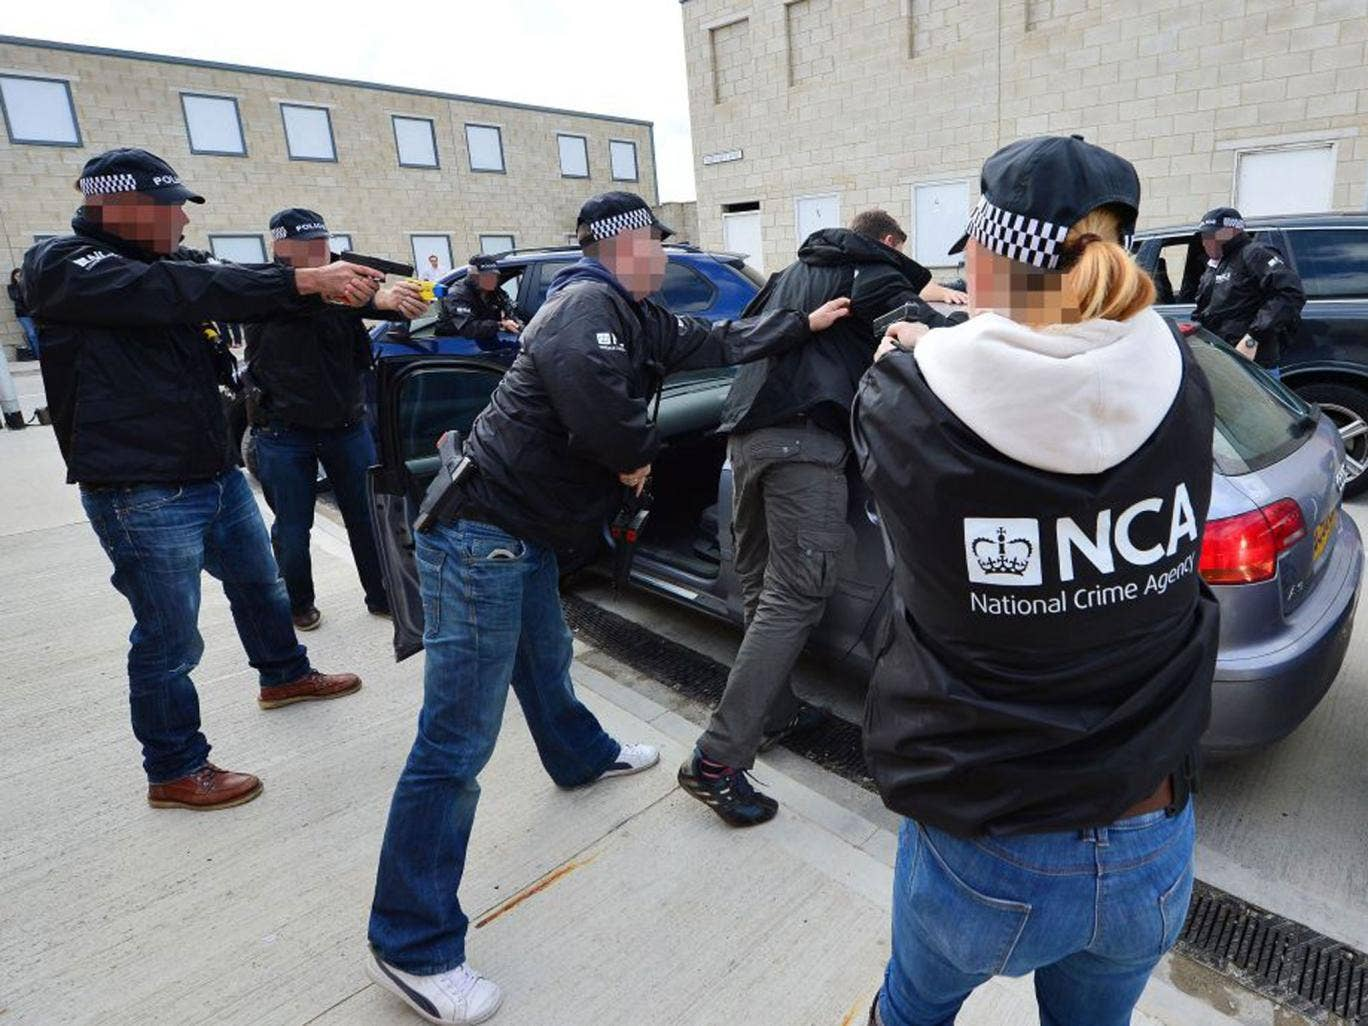 Officers of the new National Crime Agency participating in a training exercise